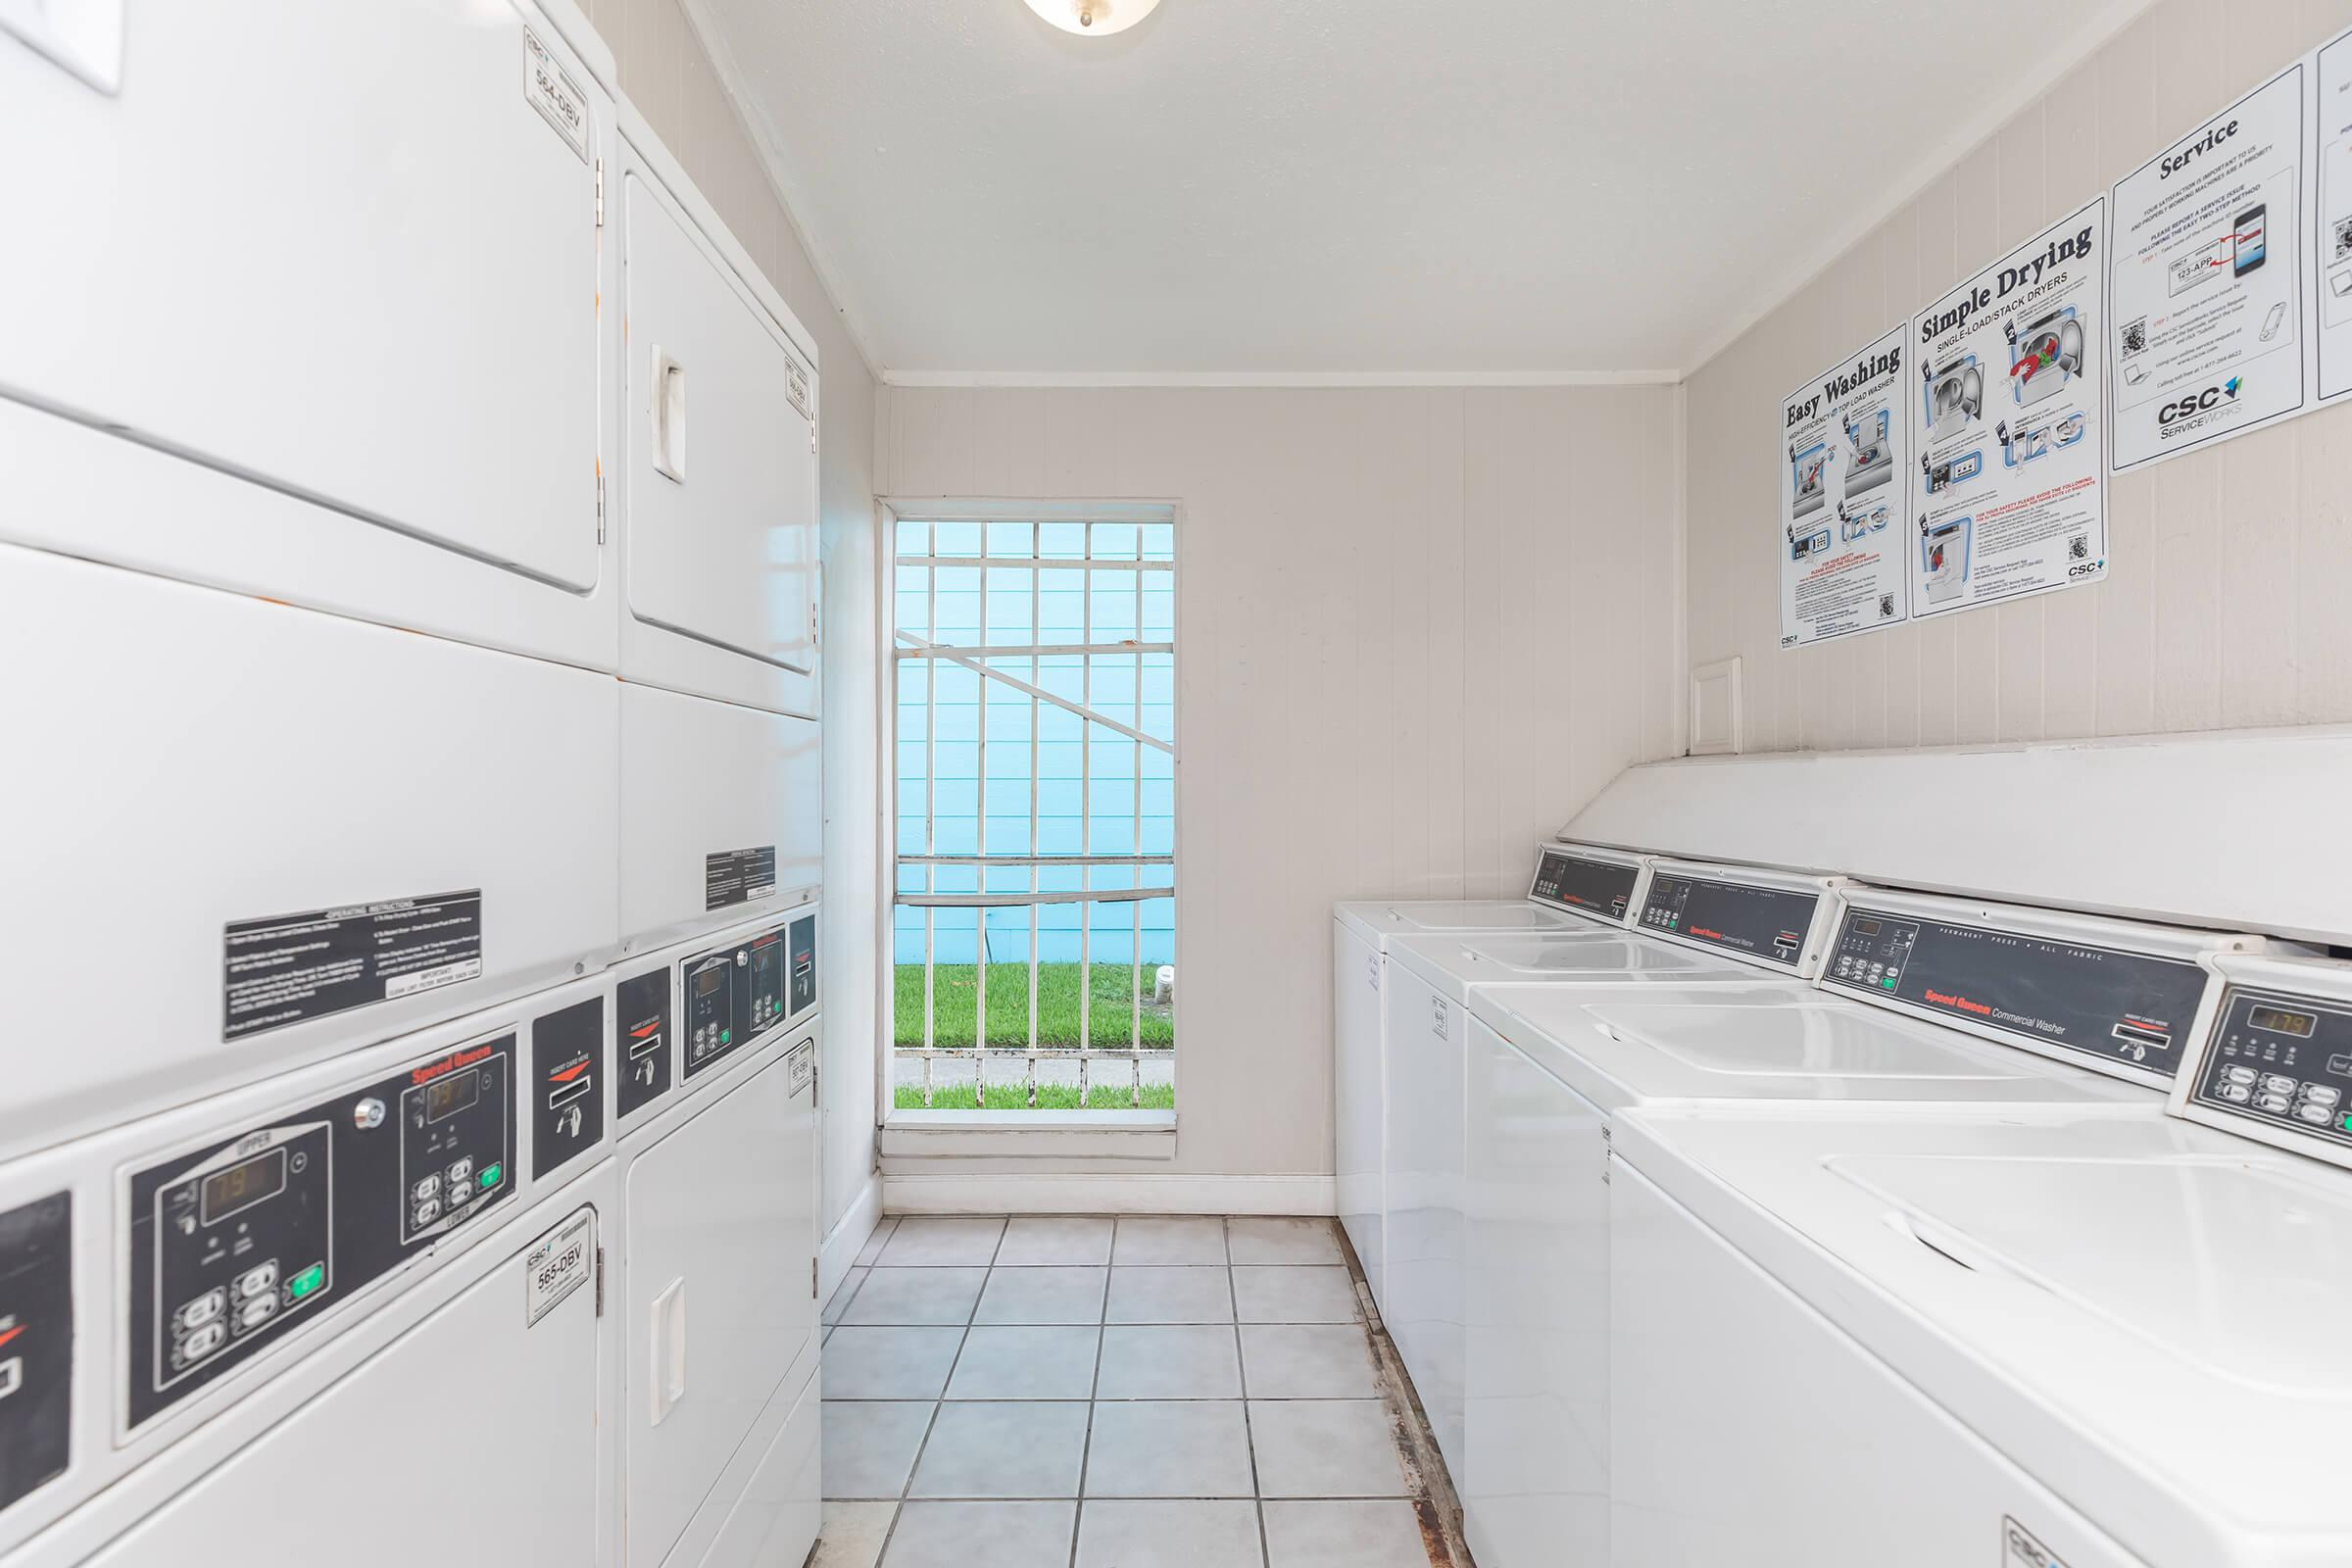 a kitchen with a stove and a microwave